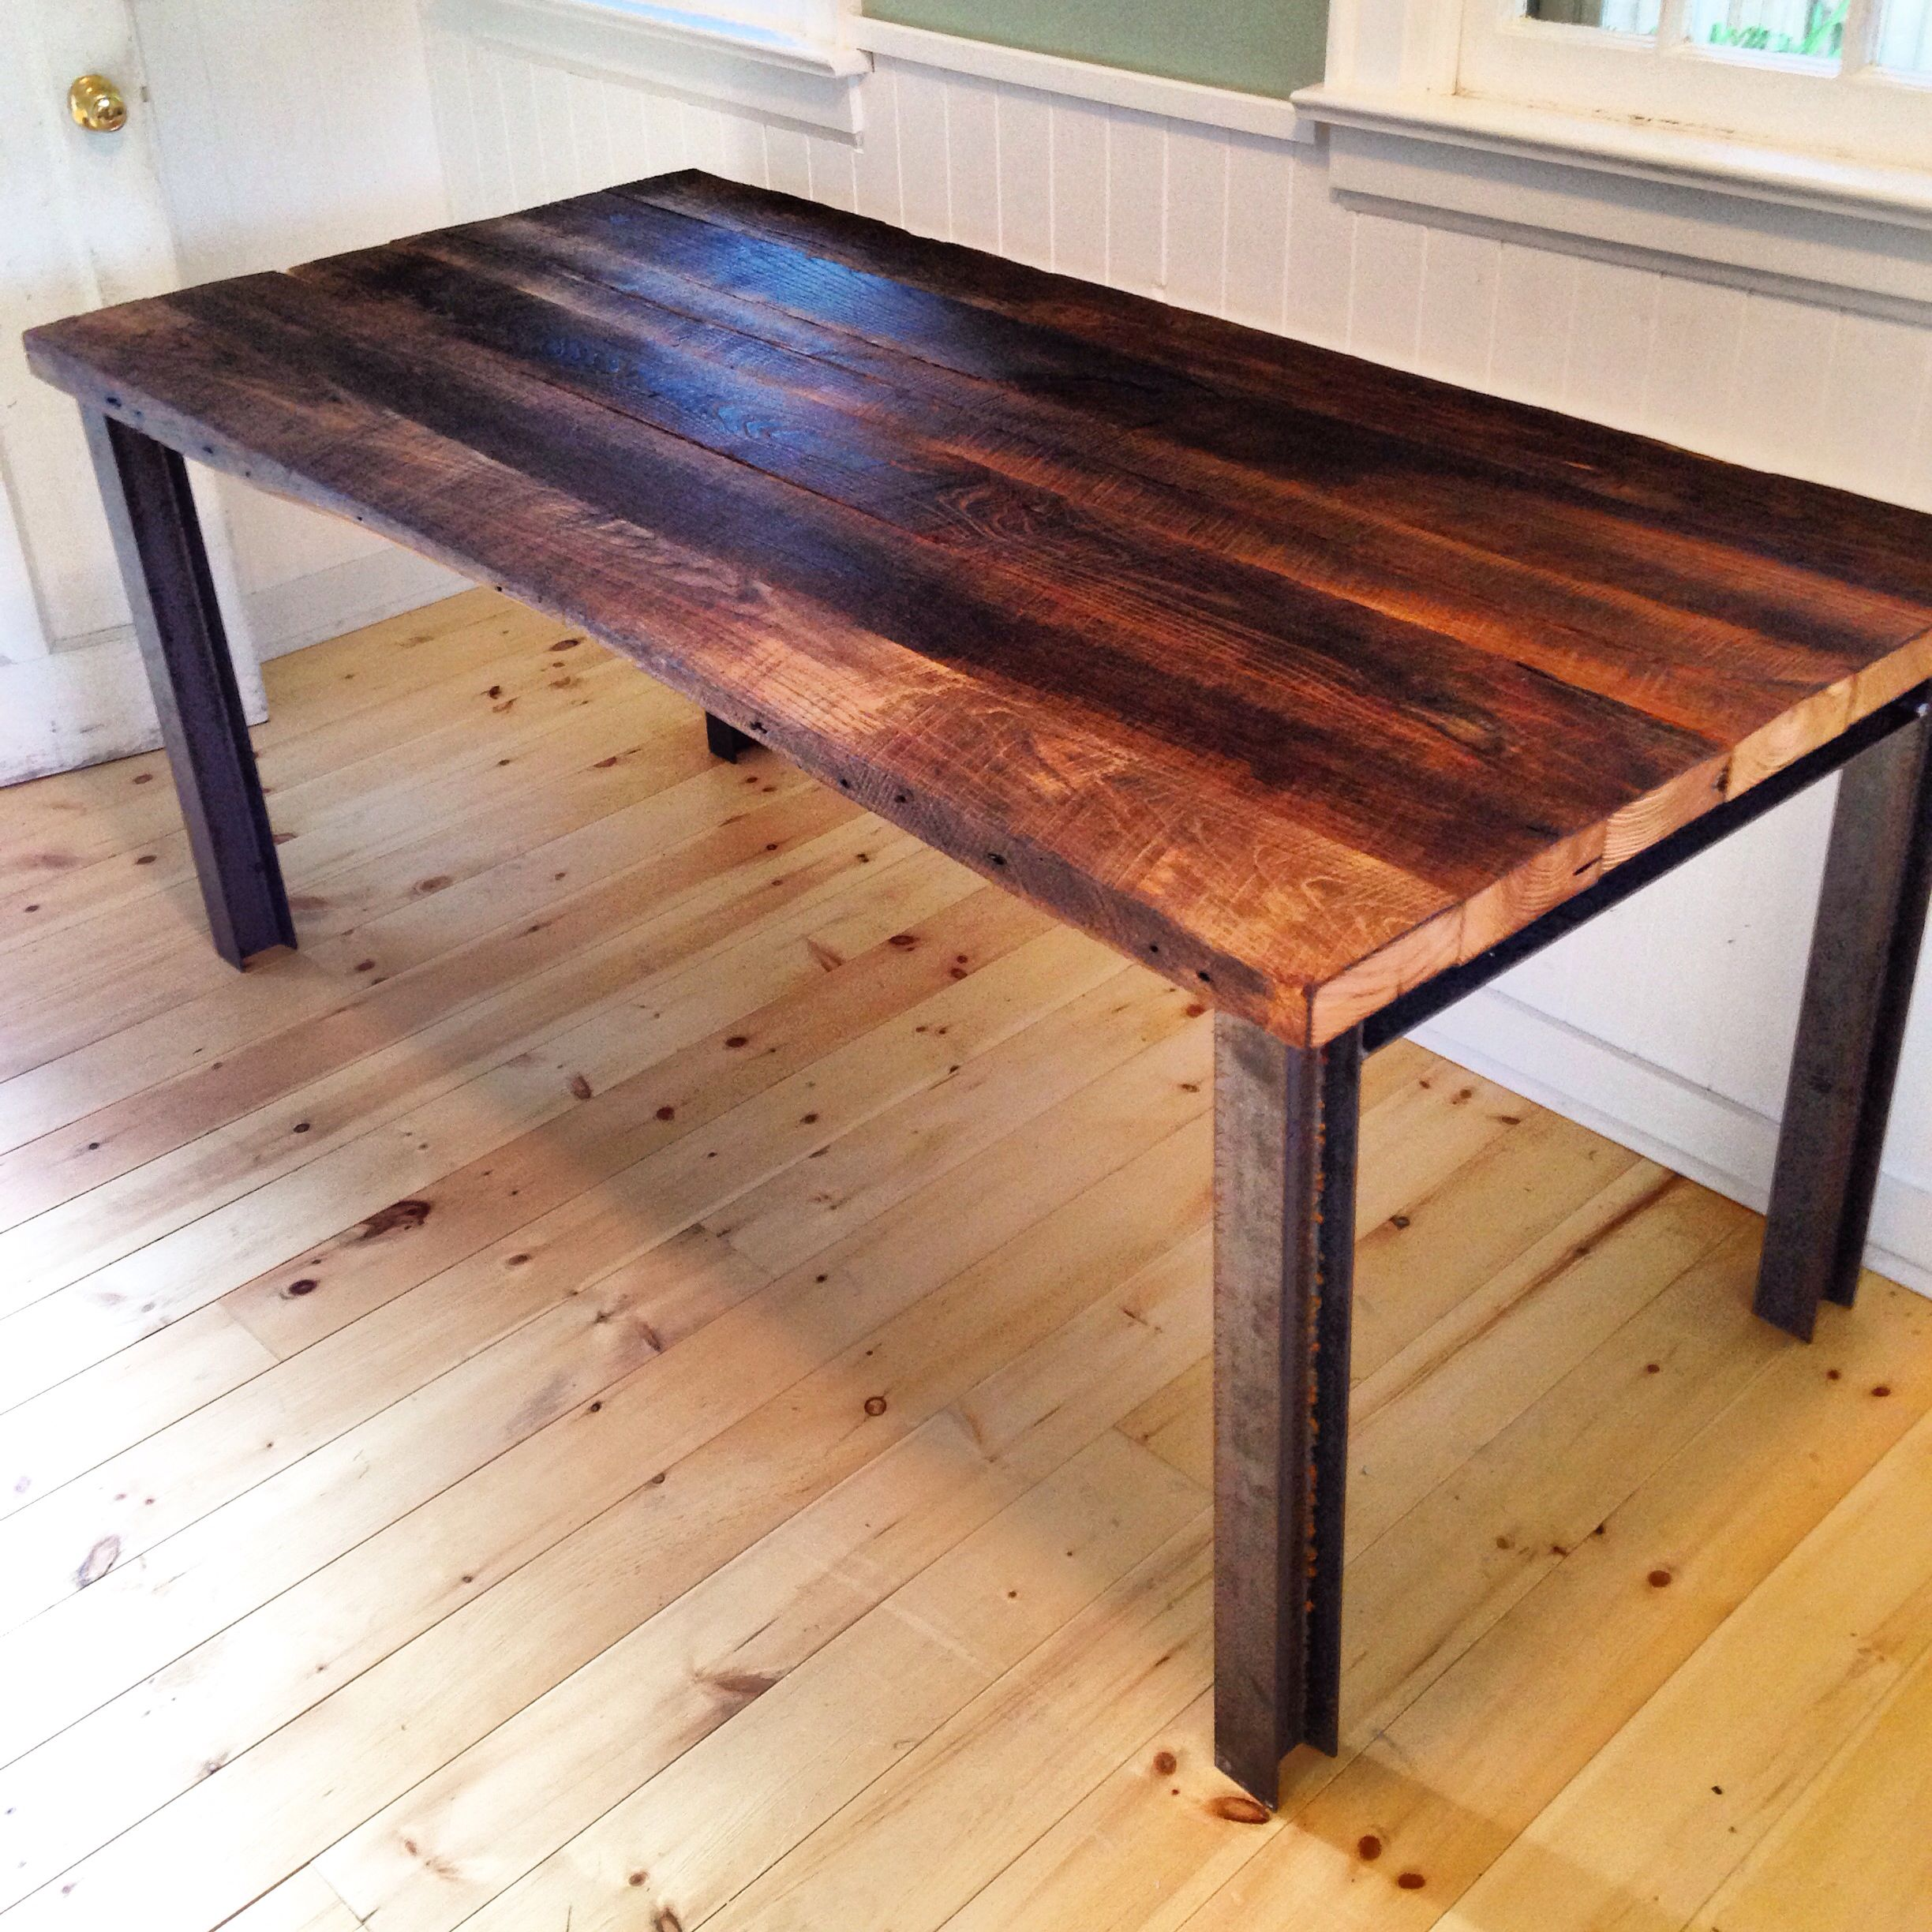 Superior Reclaimed Sassafras Table Top With I Beam Table Legs. Custom Built To Order  To